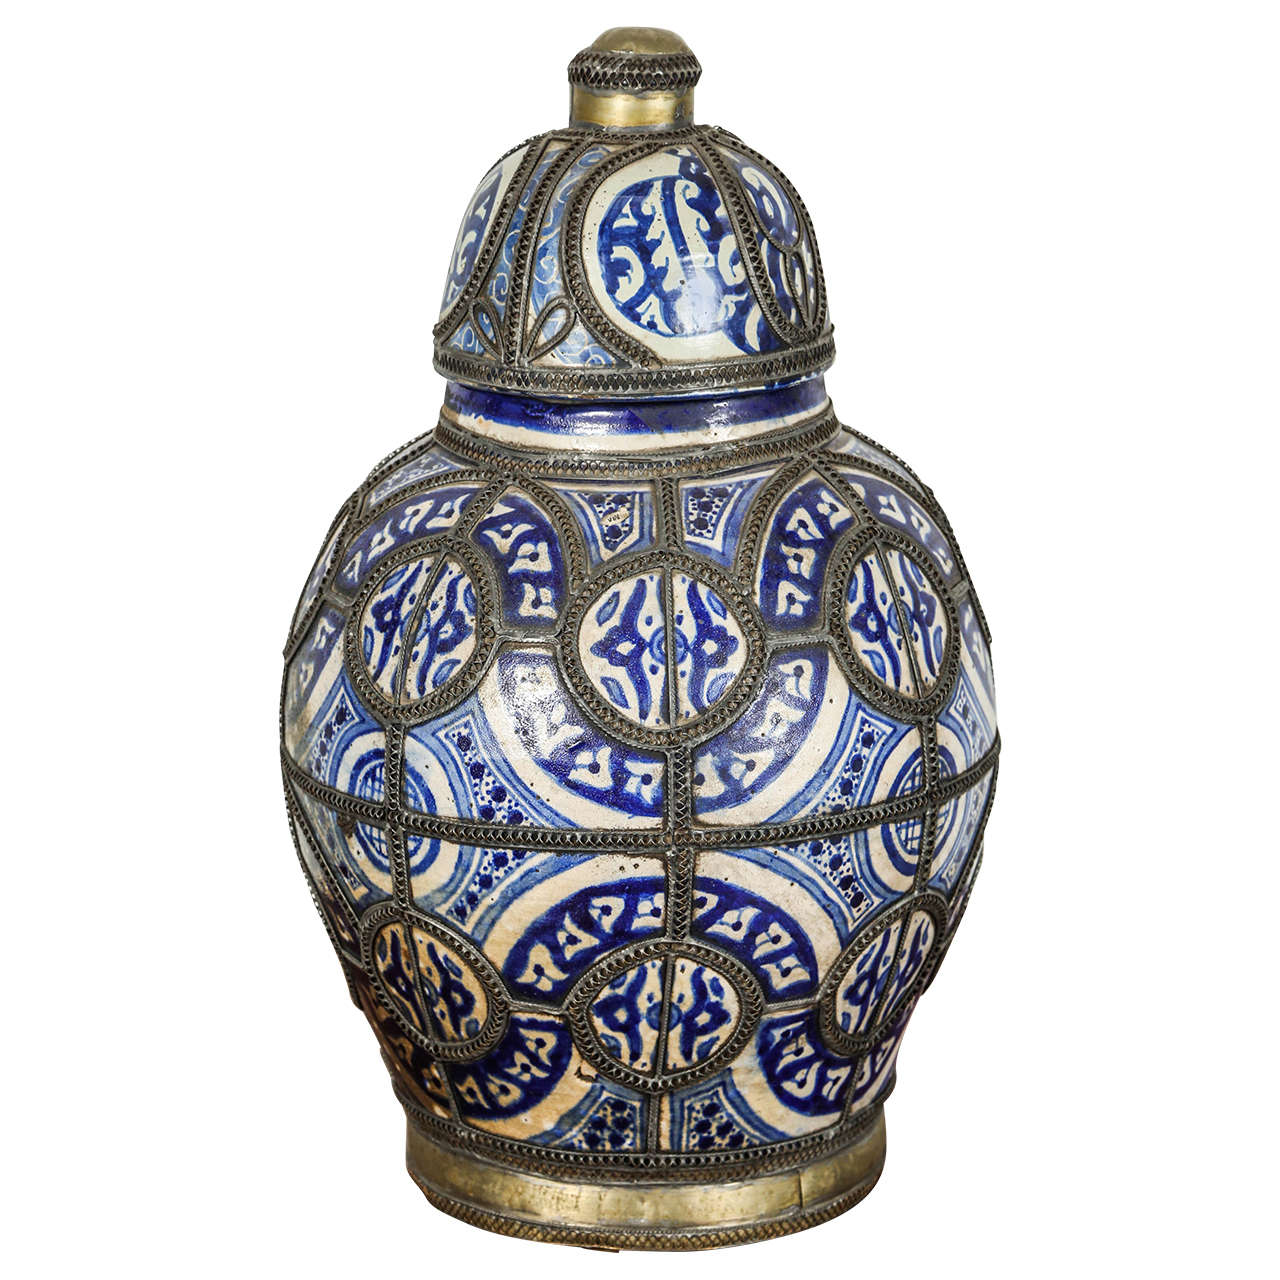 Antique Moroccan Ceramic Vase From Fez At 1stdibs